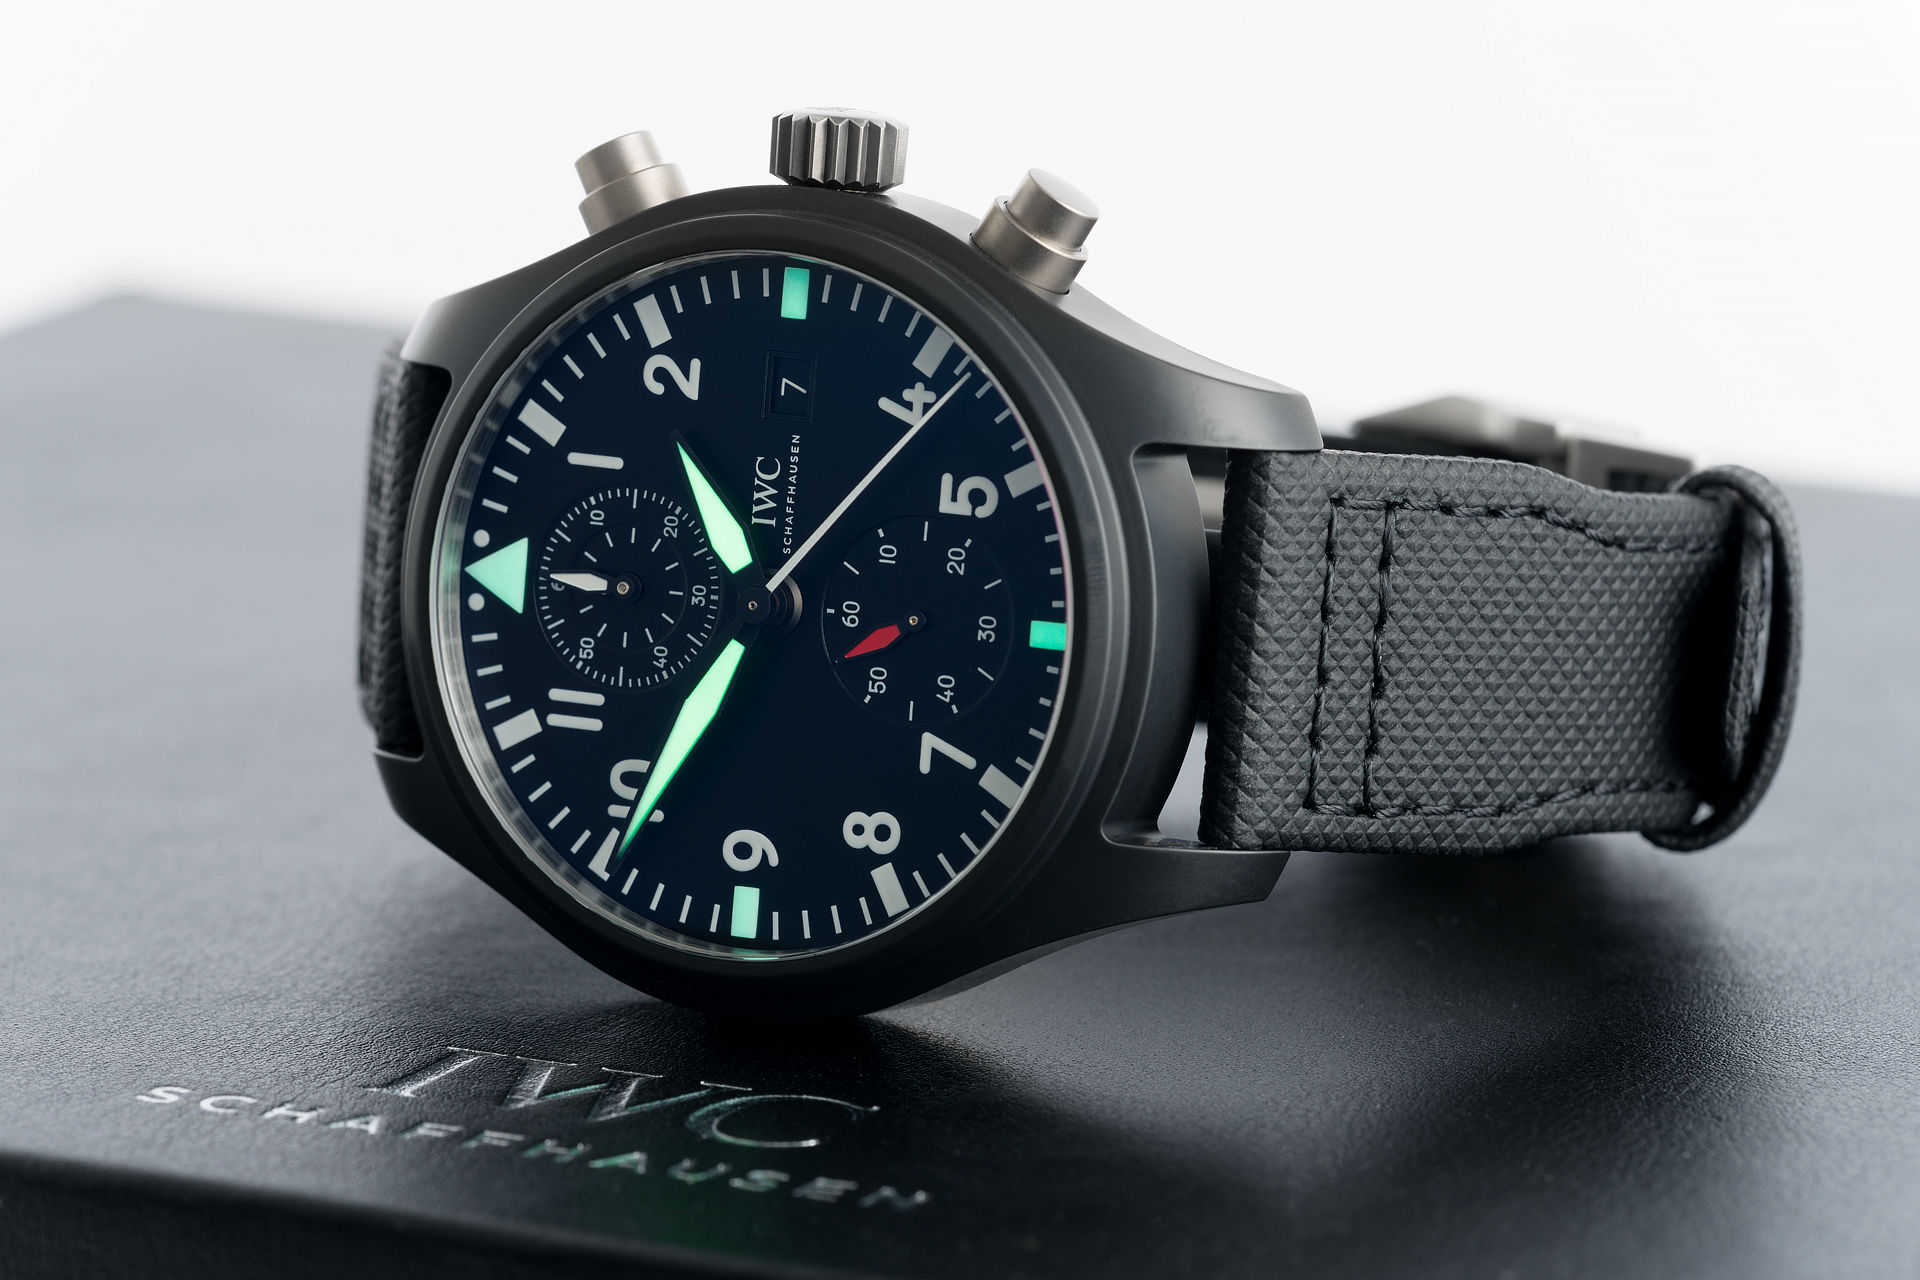 iwc pilot 39 s chronograph watches ref iw389001 brand new. Black Bedroom Furniture Sets. Home Design Ideas